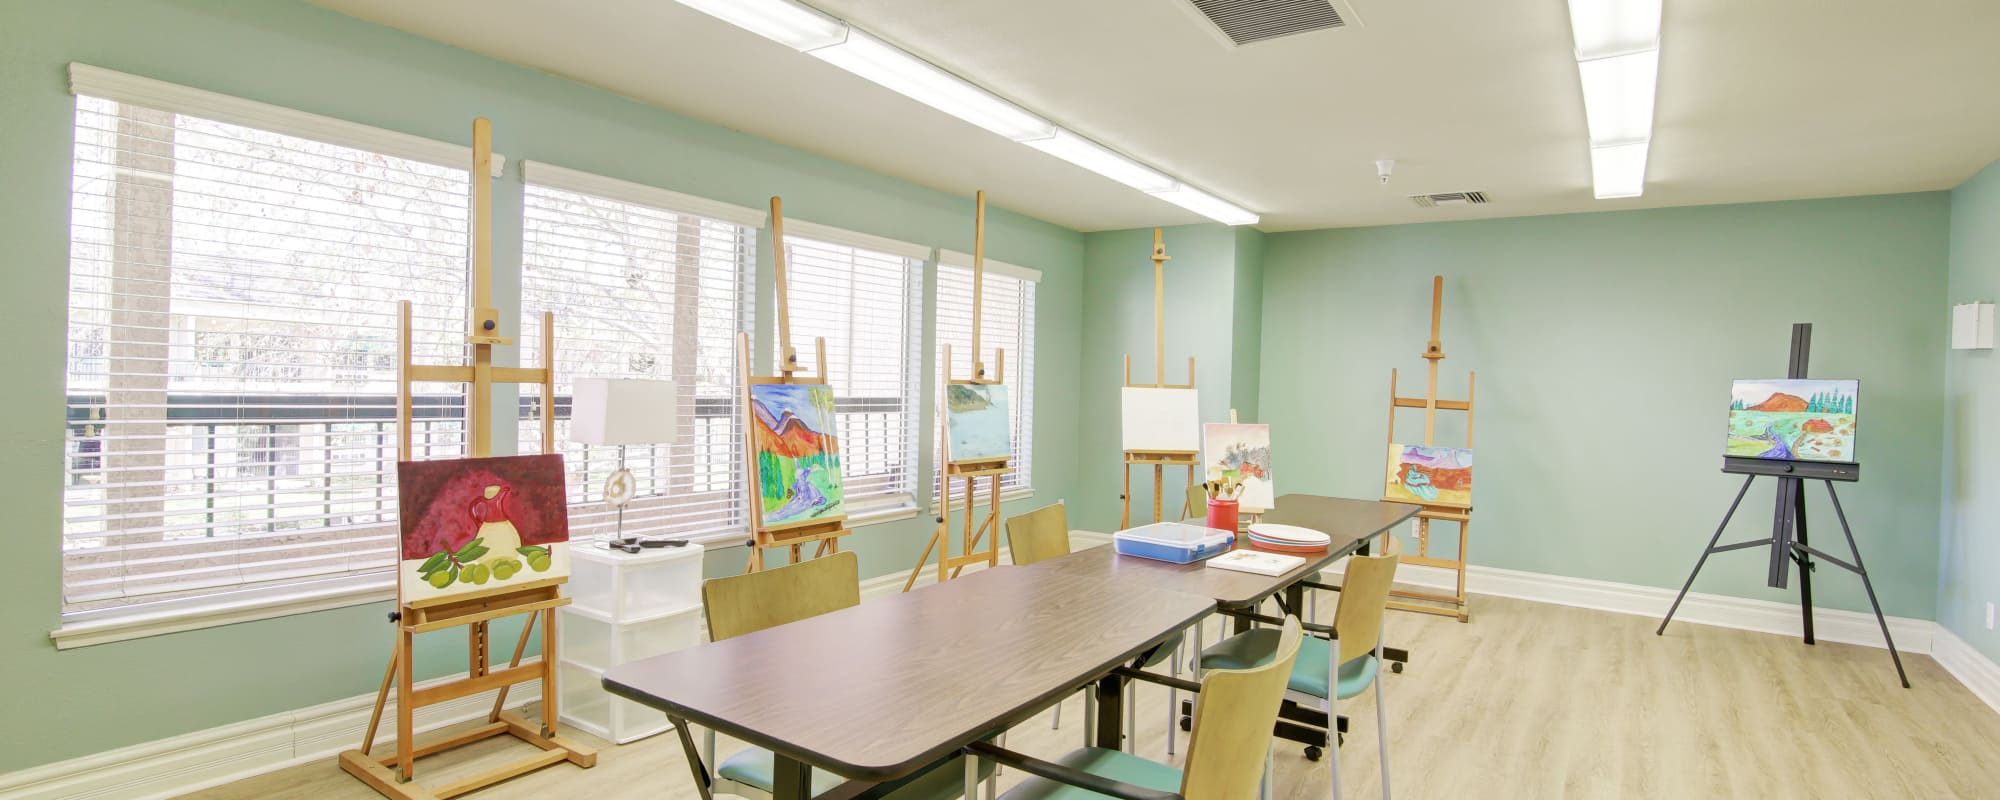 Spacious paint room at Citrus Place in Riverside, California